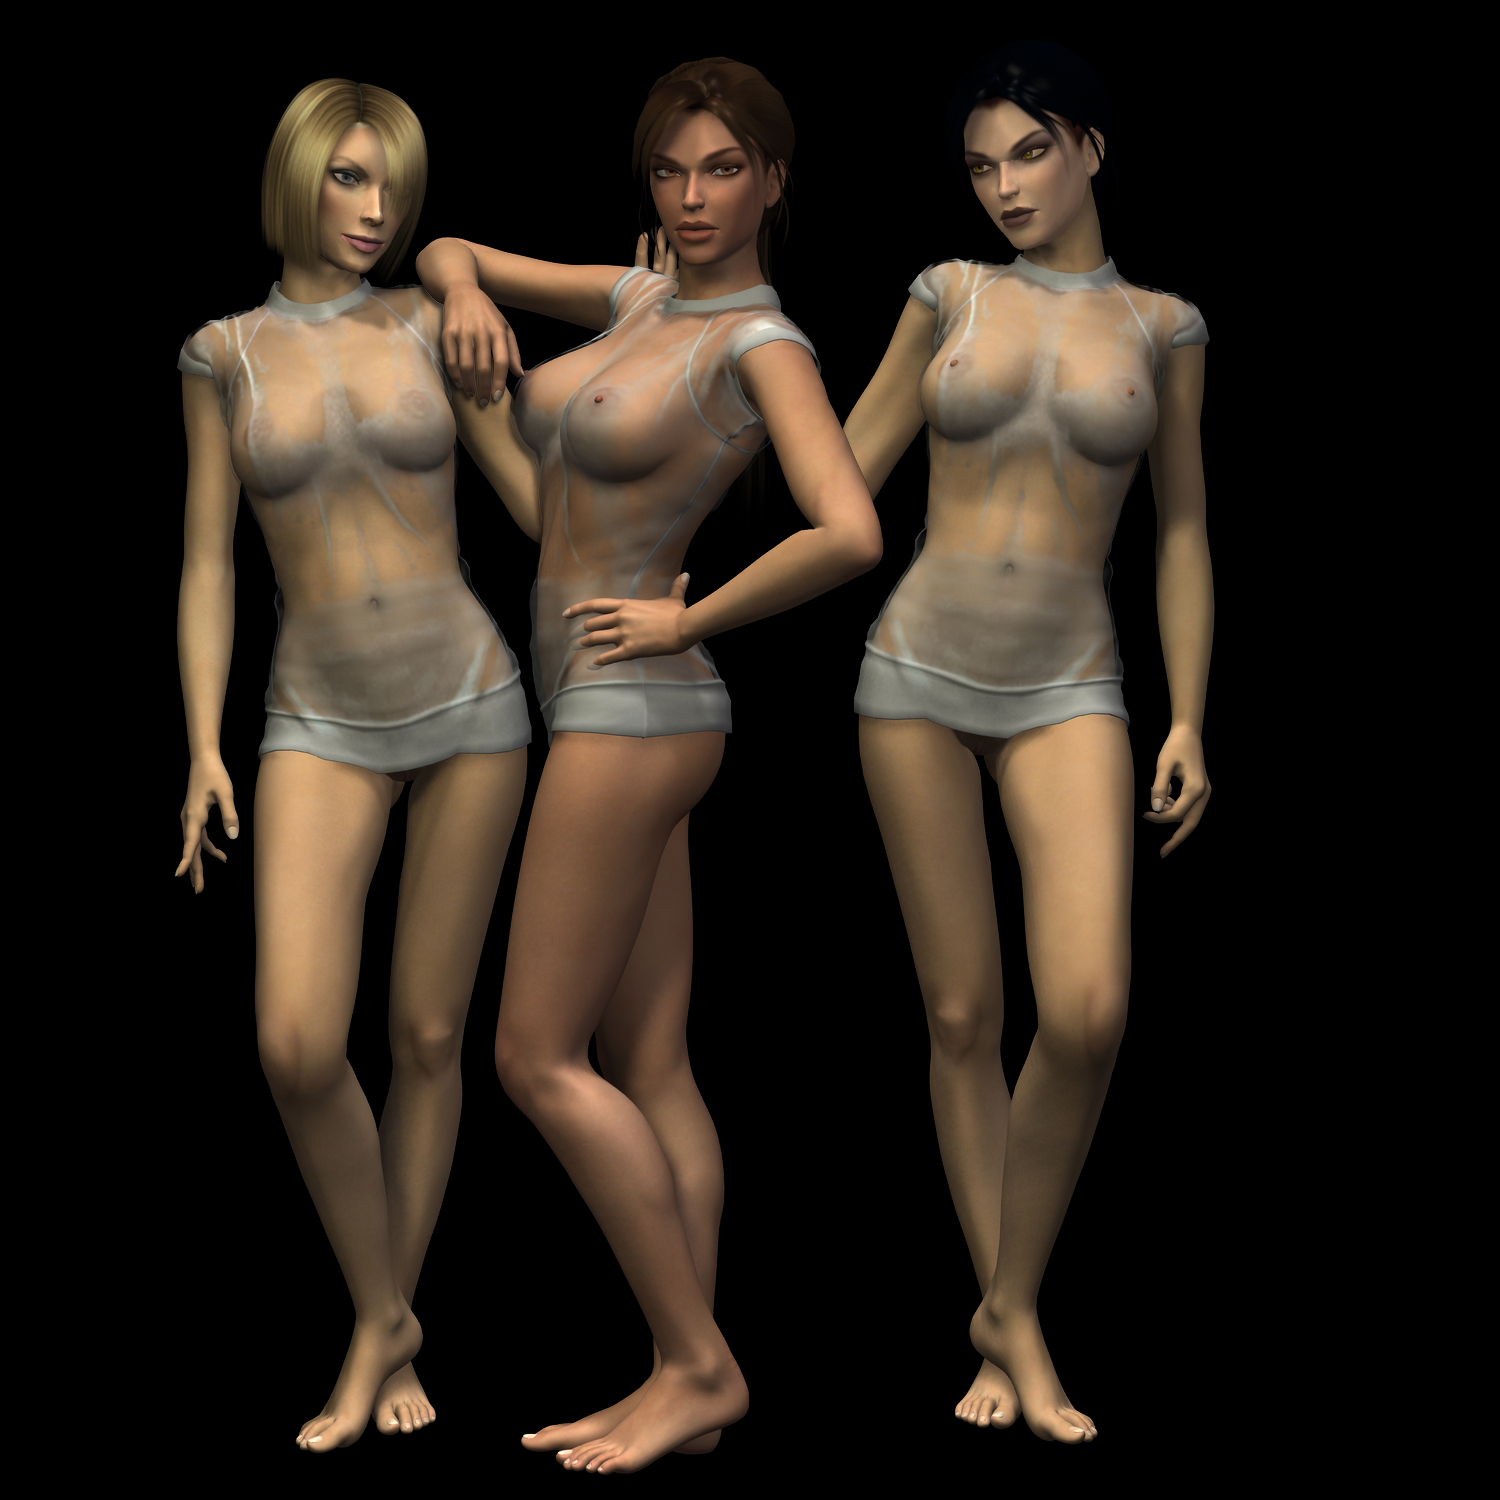 Tomb raider - underworld nude xxx streaming